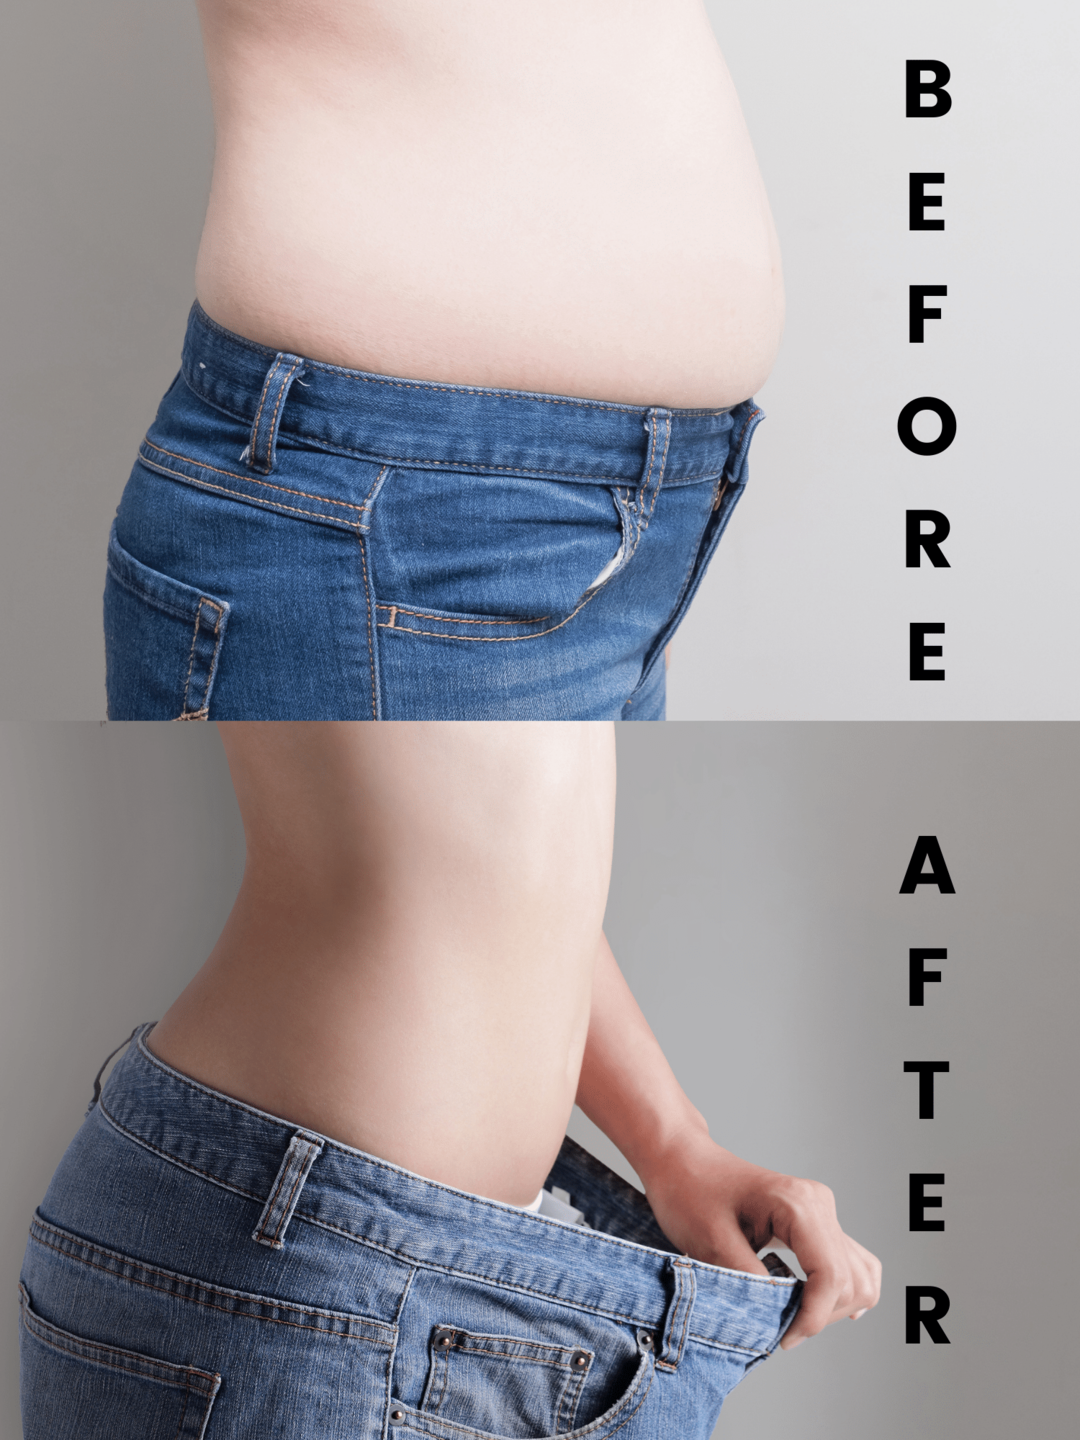 Before & After Tummy Tuck Surgery (Abdominoplasty)